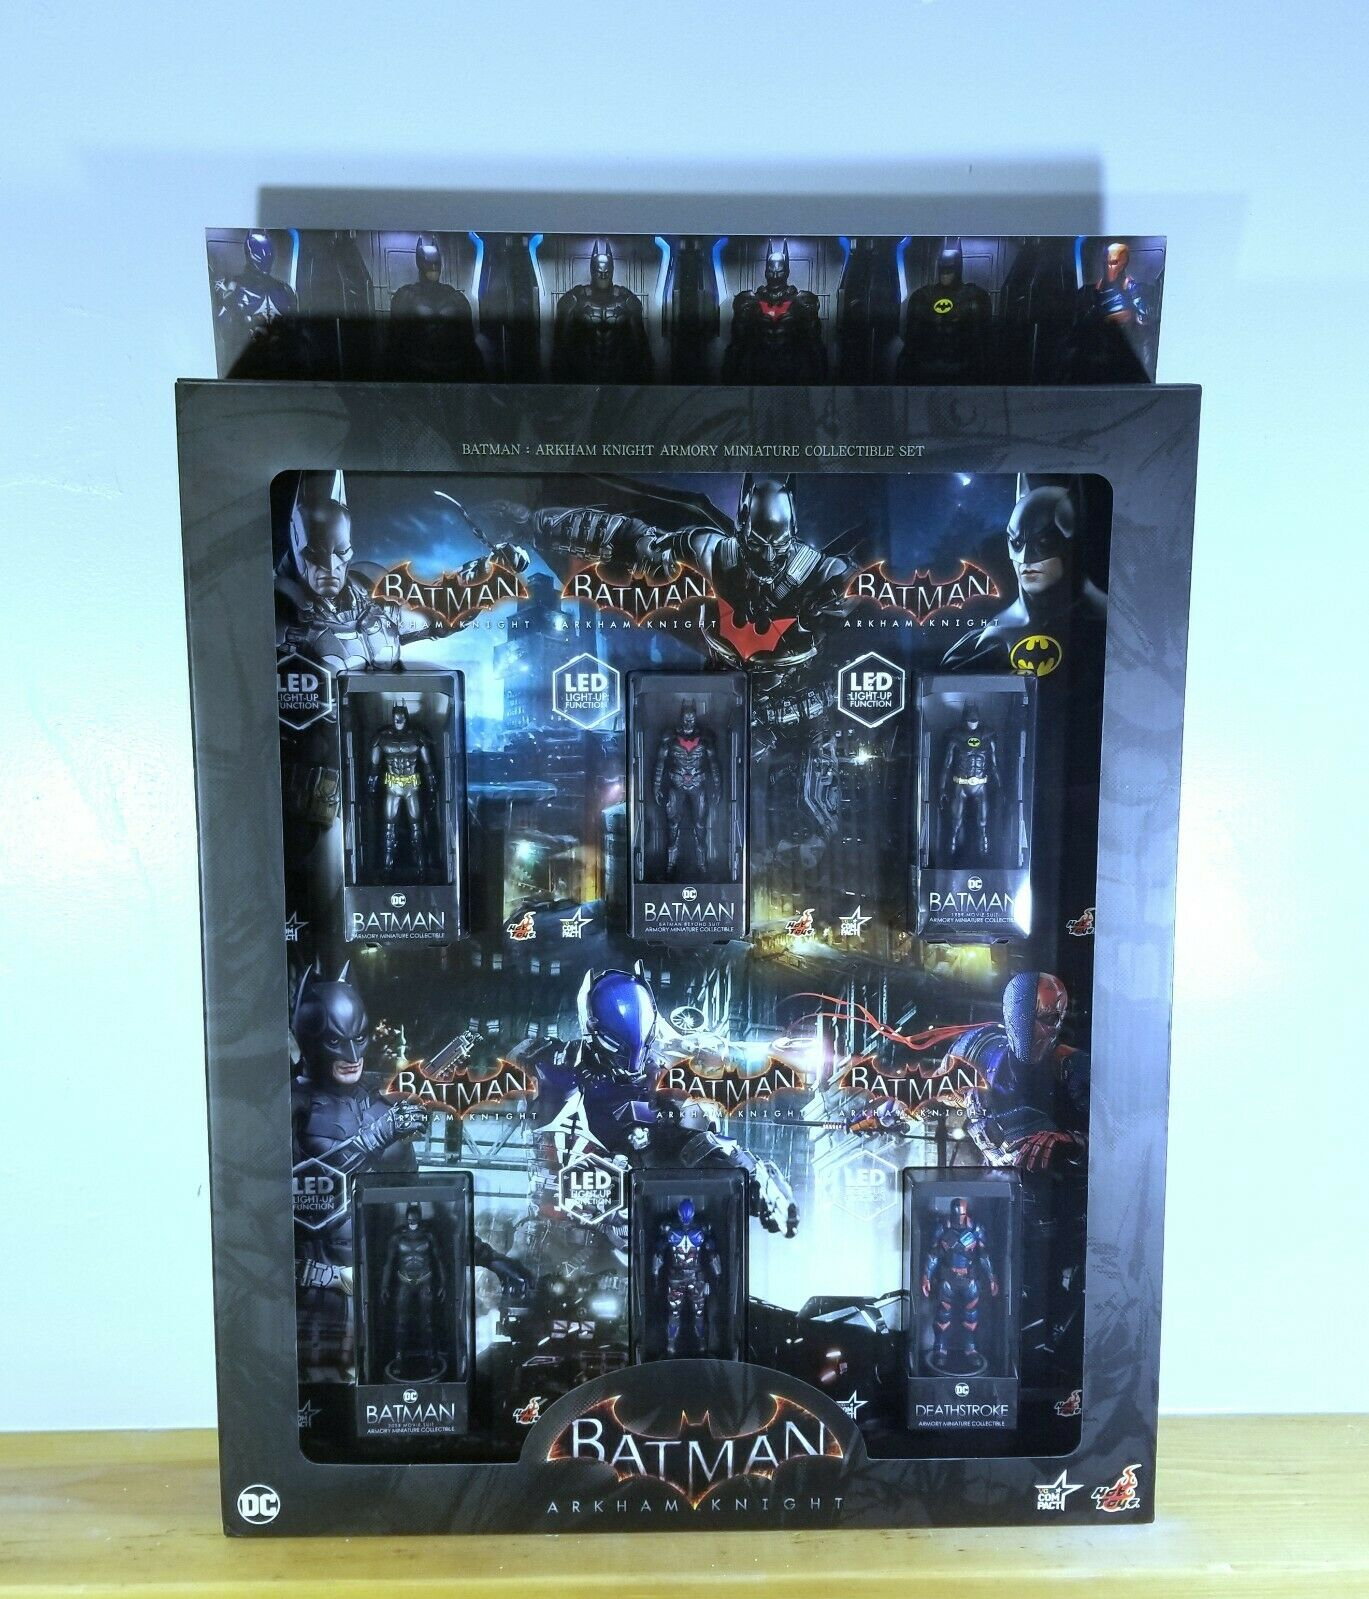 Hot Toys Batman Arkham Knight Armory Minature Collectible Set DC NIB on eBay thumbnail